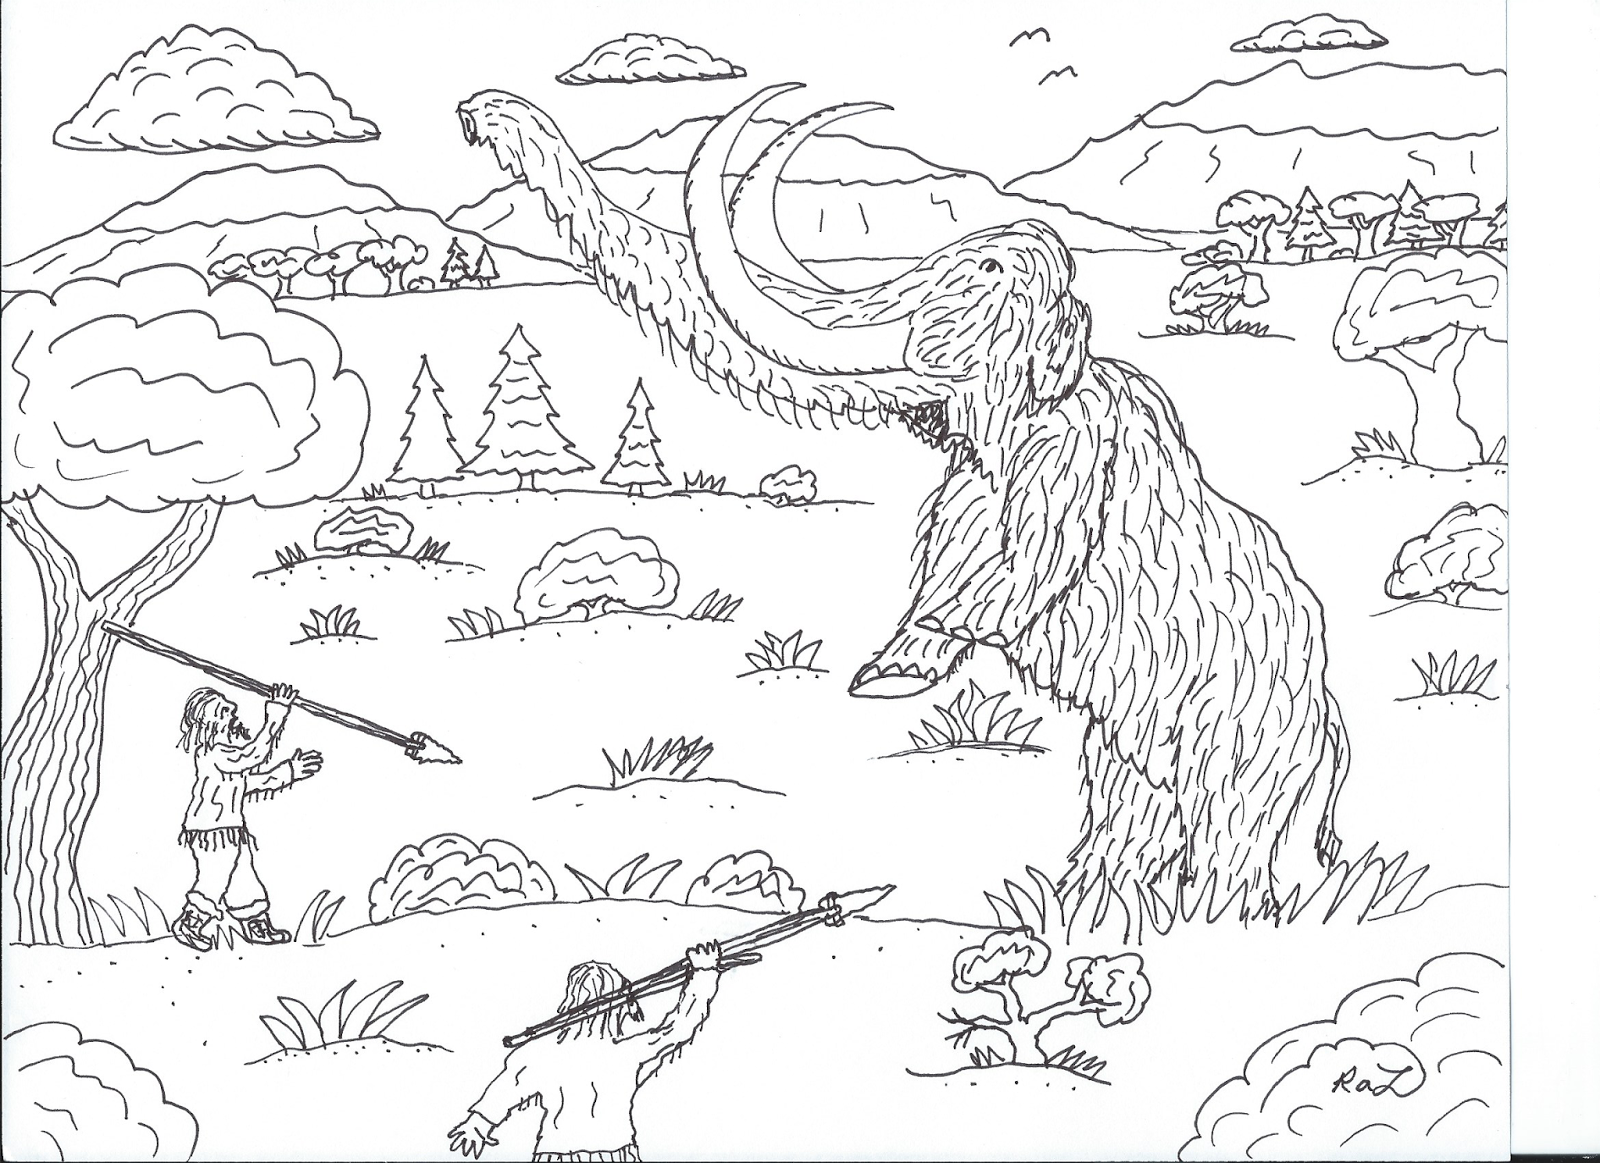 Robin 39 s great coloring pages march 2017 for Wooly mammoth coloring page